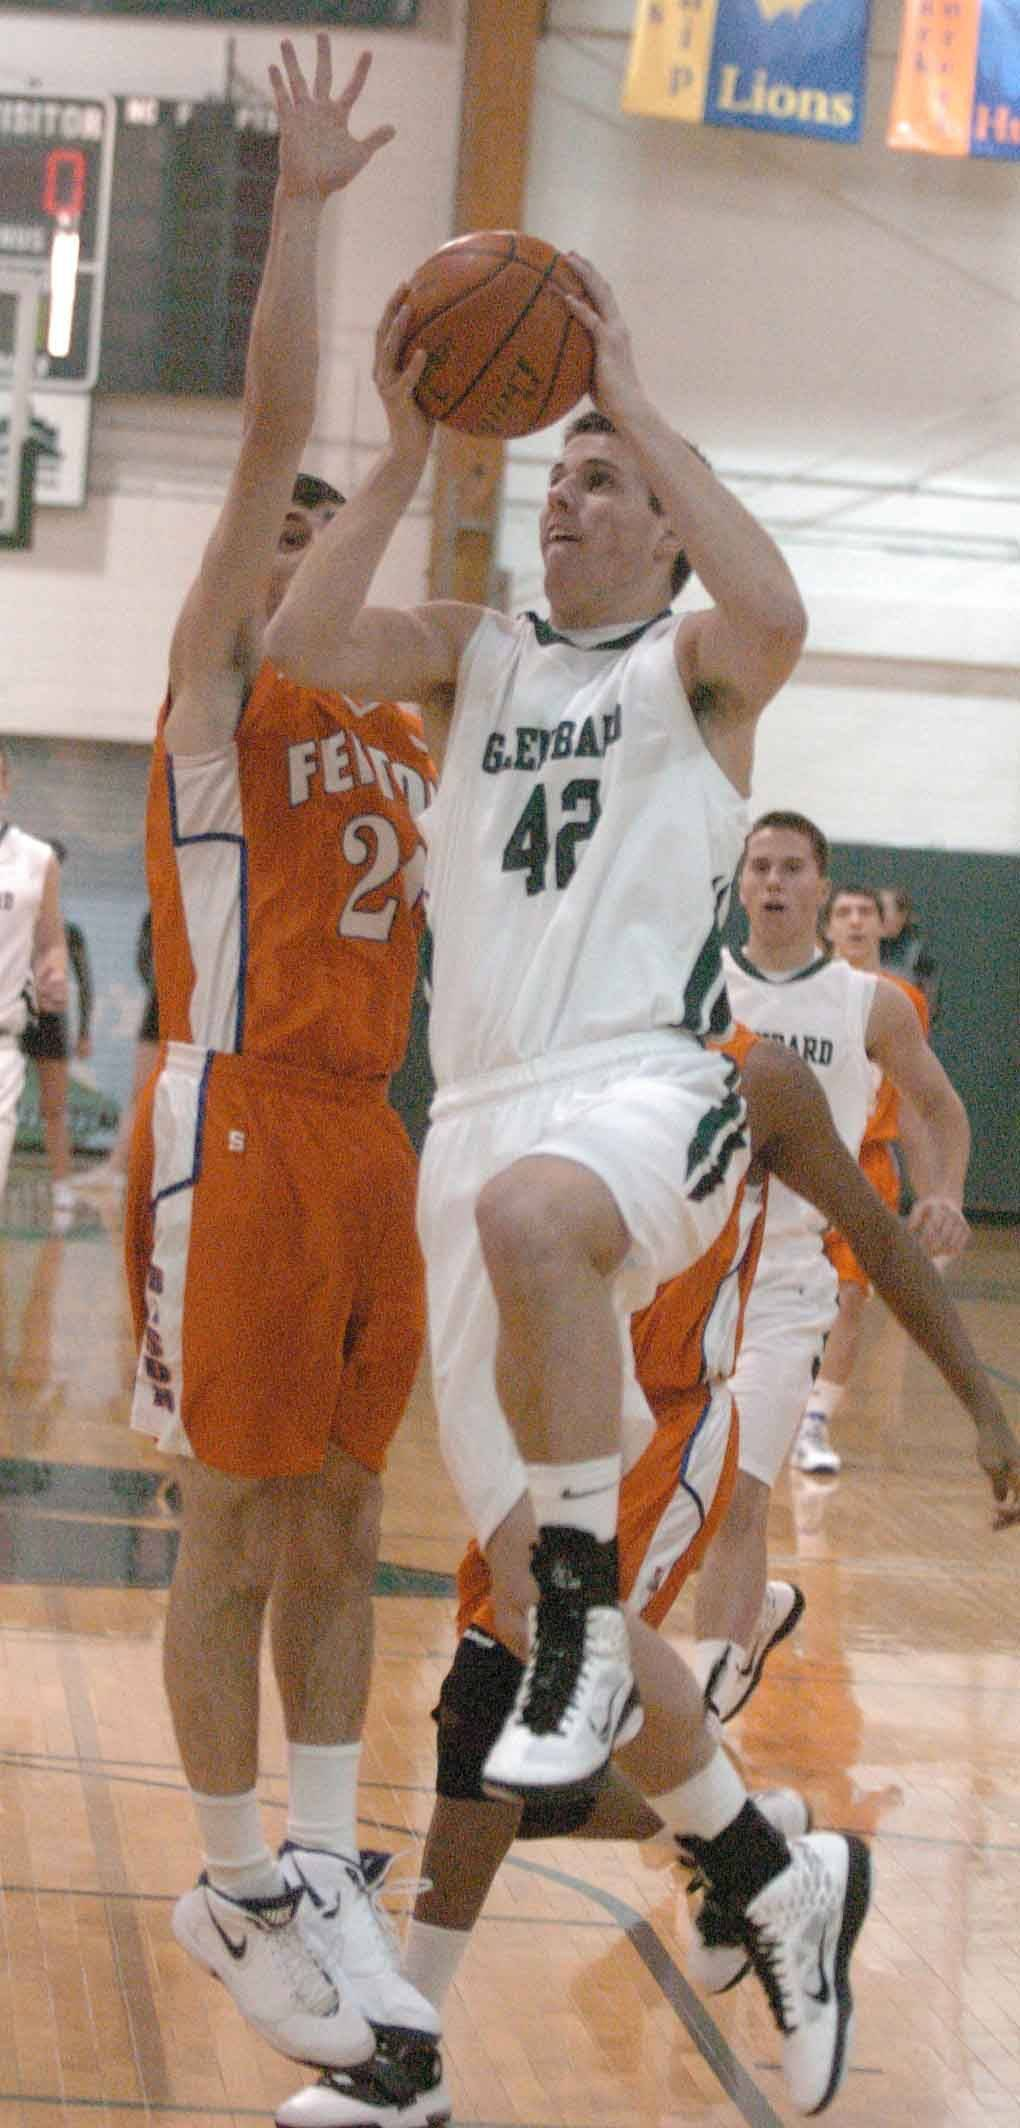 Images: Glenbard West vs. Fenton boys basketball